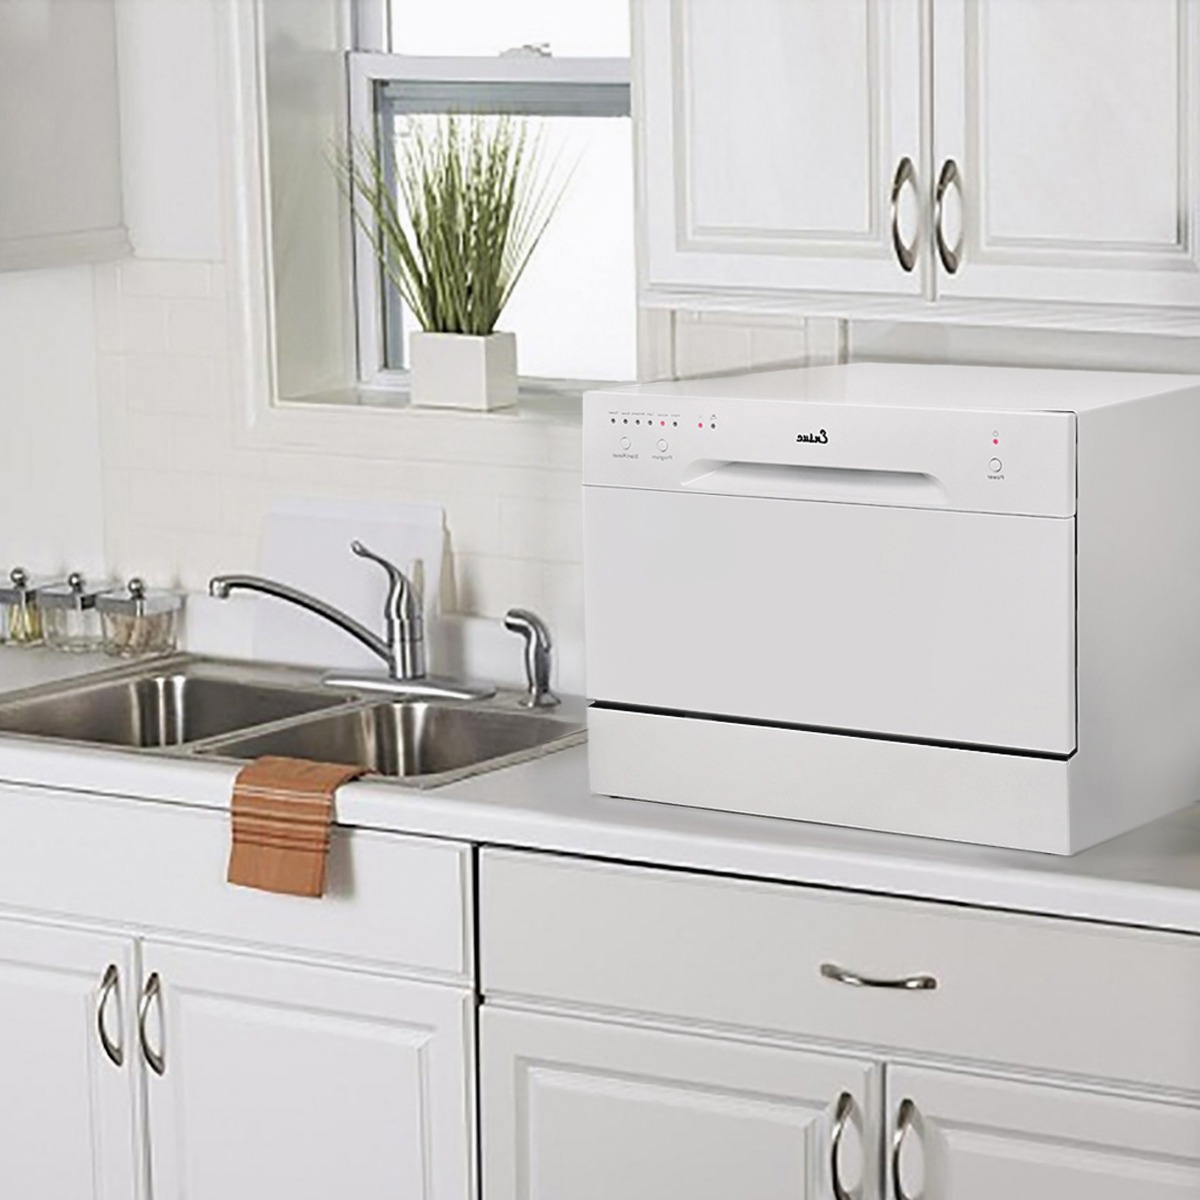 is countertop beautiful don dishwasher as you tetra countertops even creativity friendly this clever and t eco line need it a for hed portable water